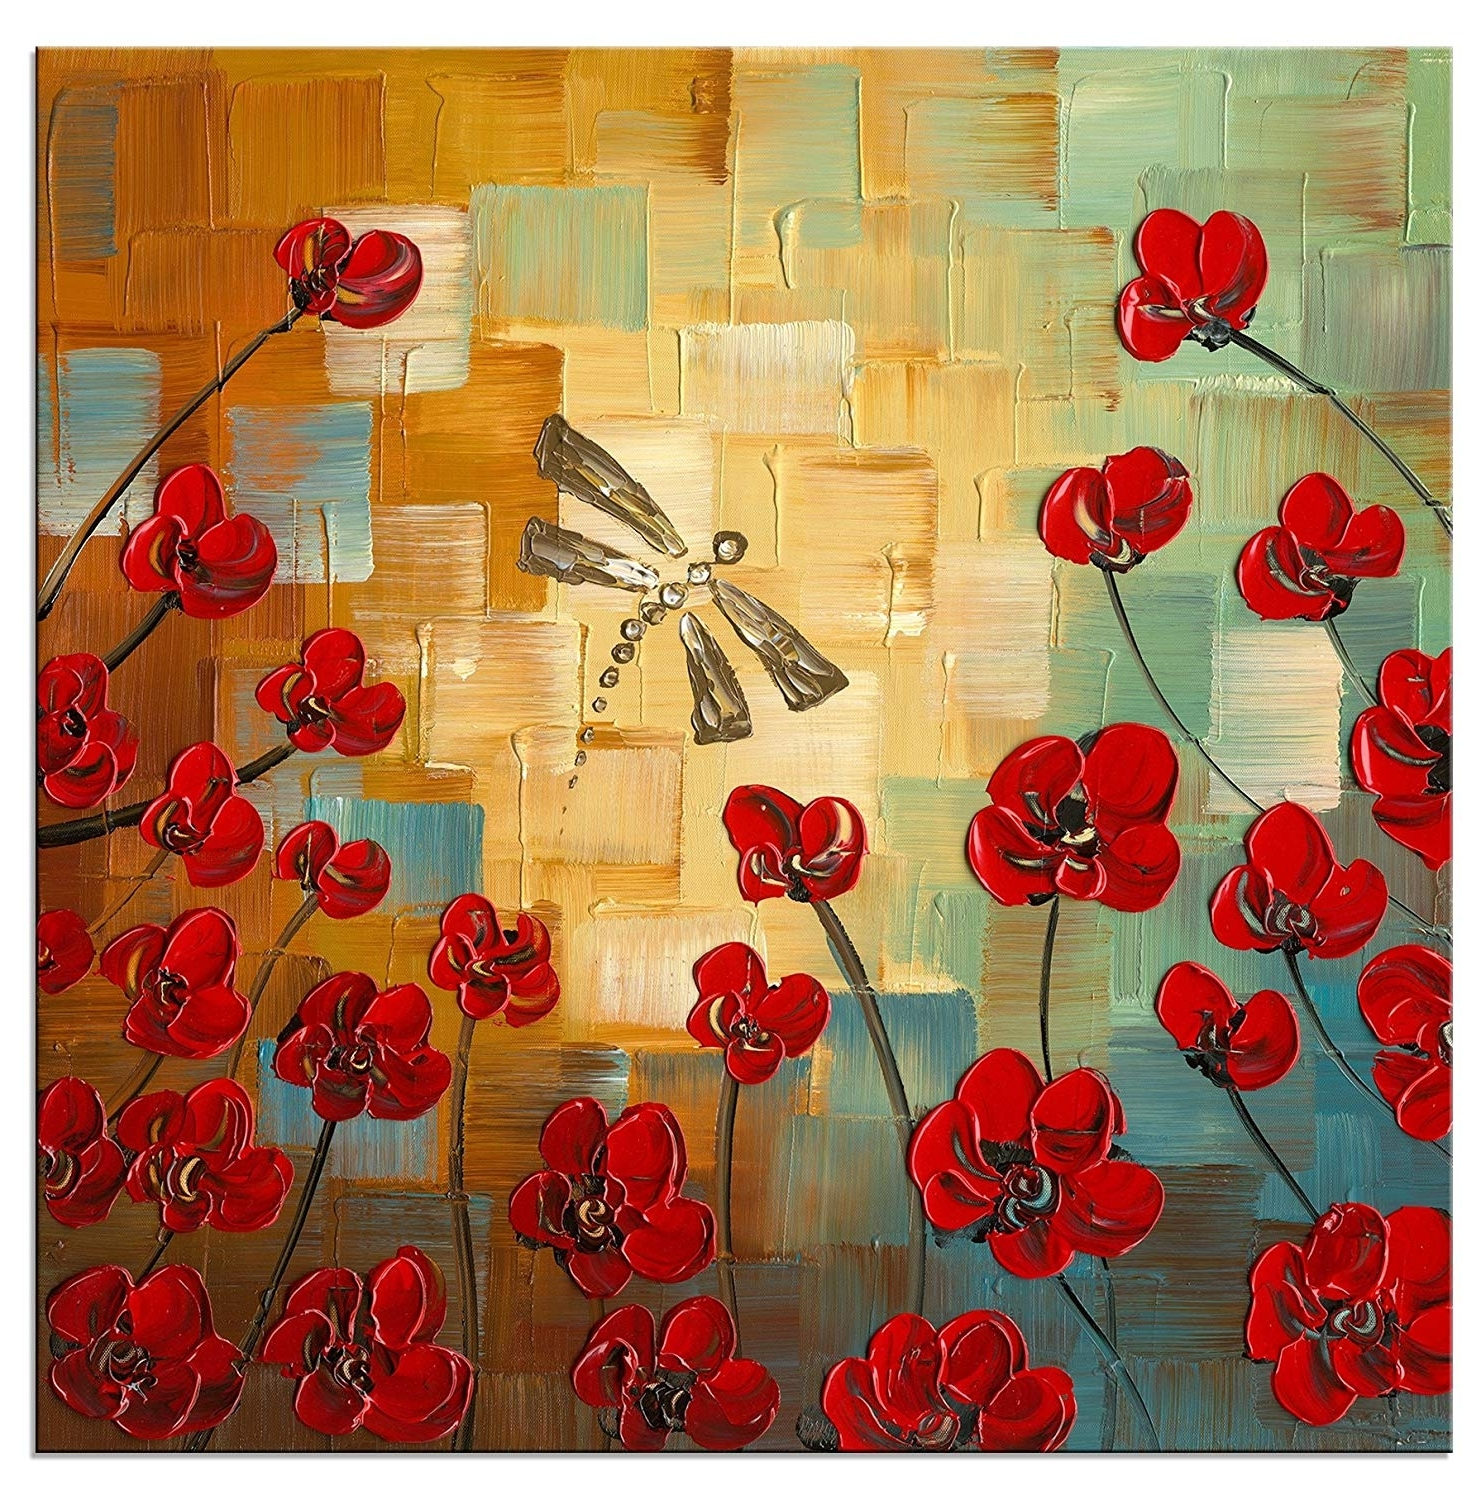 [%Amazon: Wieco Art Dragonfly Modern Flowers Artwork 100% Hand Pertaining To Preferred Wall Art Paintings|Wall Art Paintings With Regard To 2017 Amazon: Wieco Art Dragonfly Modern Flowers Artwork 100% Hand|Current Wall Art Paintings Pertaining To Amazon: Wieco Art Dragonfly Modern Flowers Artwork 100% Hand|Favorite Amazon: Wieco Art Dragonfly Modern Flowers Artwork 100% Hand Within Wall Art Paintings%] (View 10 of 15)